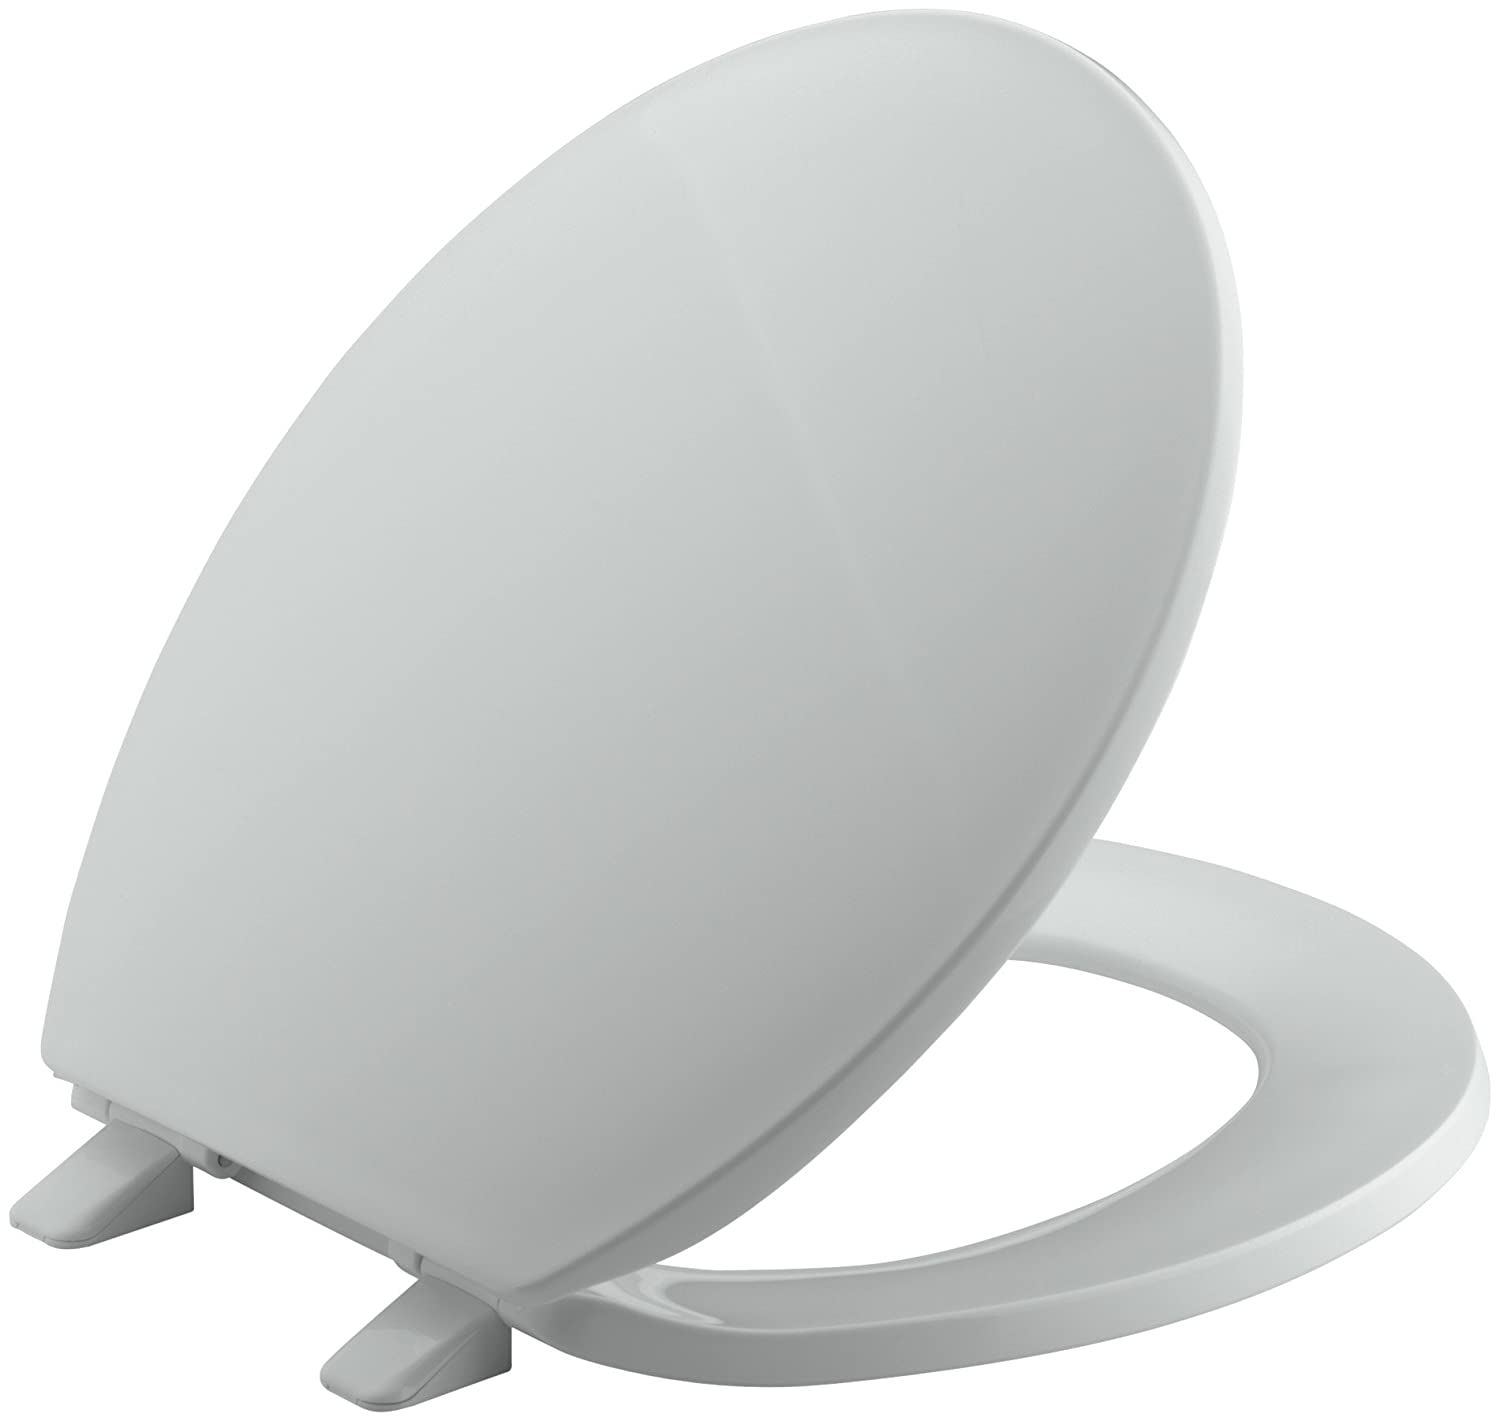 round front toilet dimensions. KOHLER K 4775 95 Brevia with Quick Release Hinges Round front Toilet Seat  Ice Grey Kohler Front Amazon com